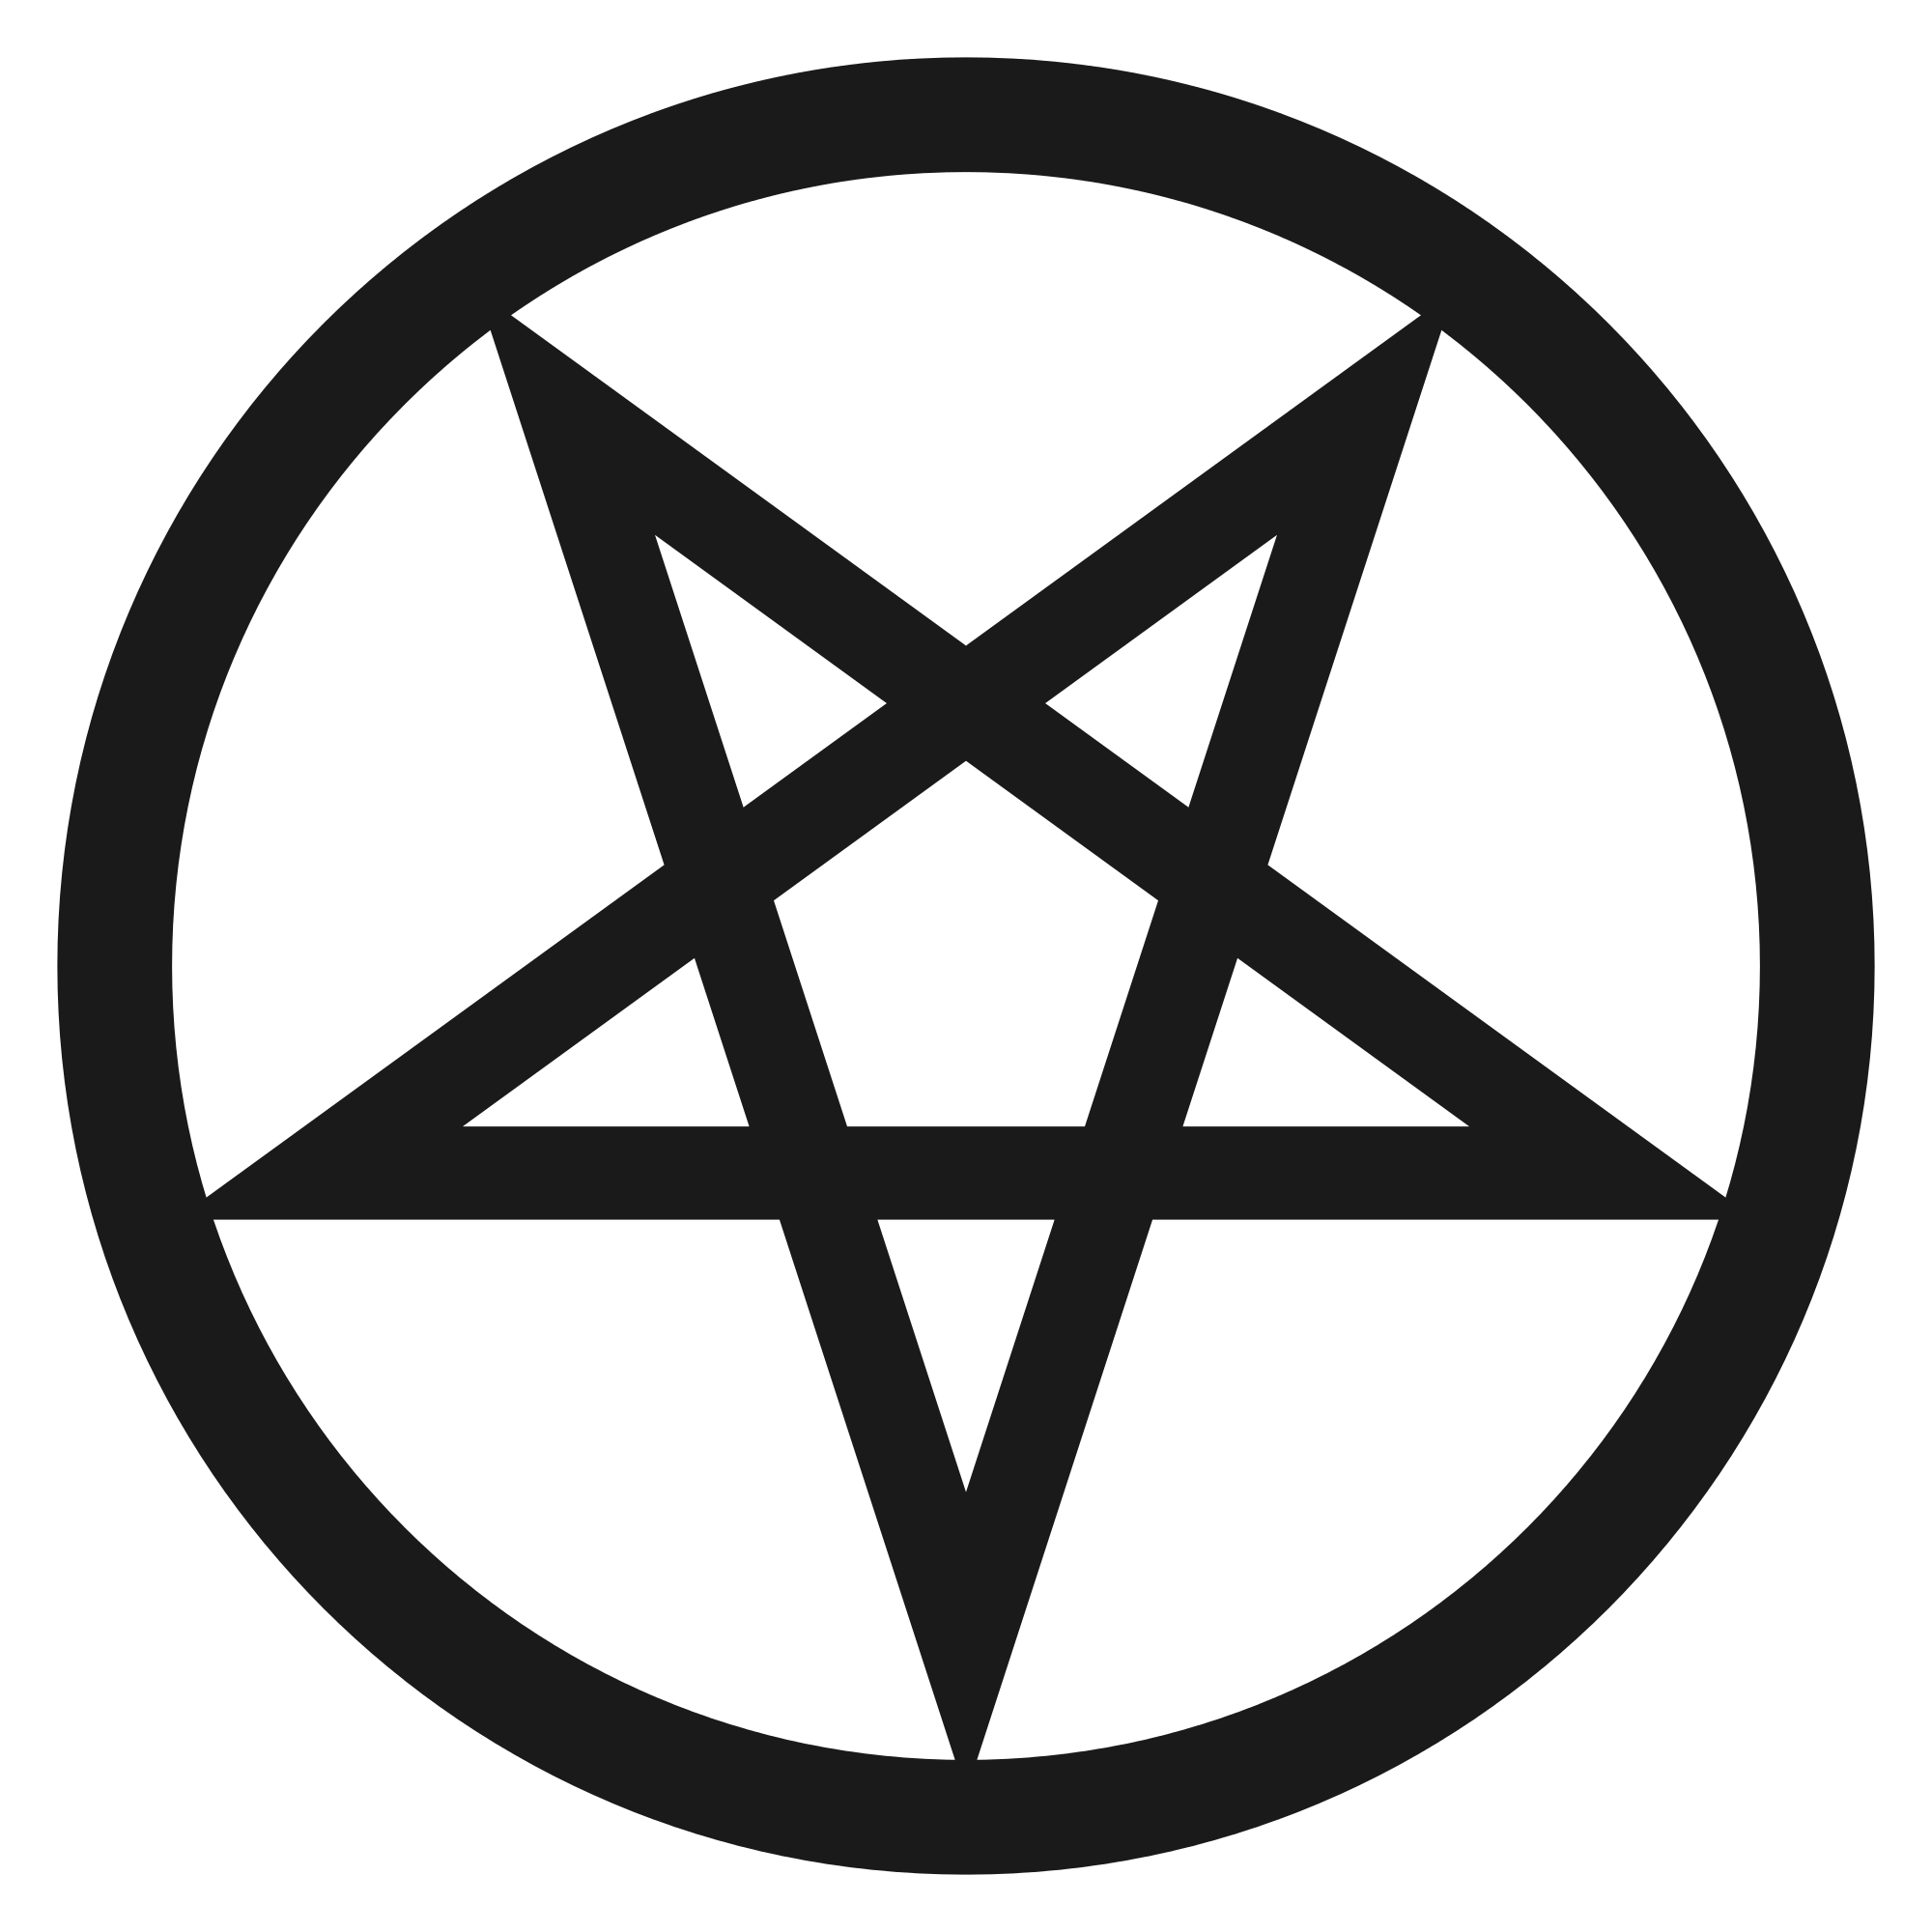 Pentacle vector svg. File inverted bold wikimedia